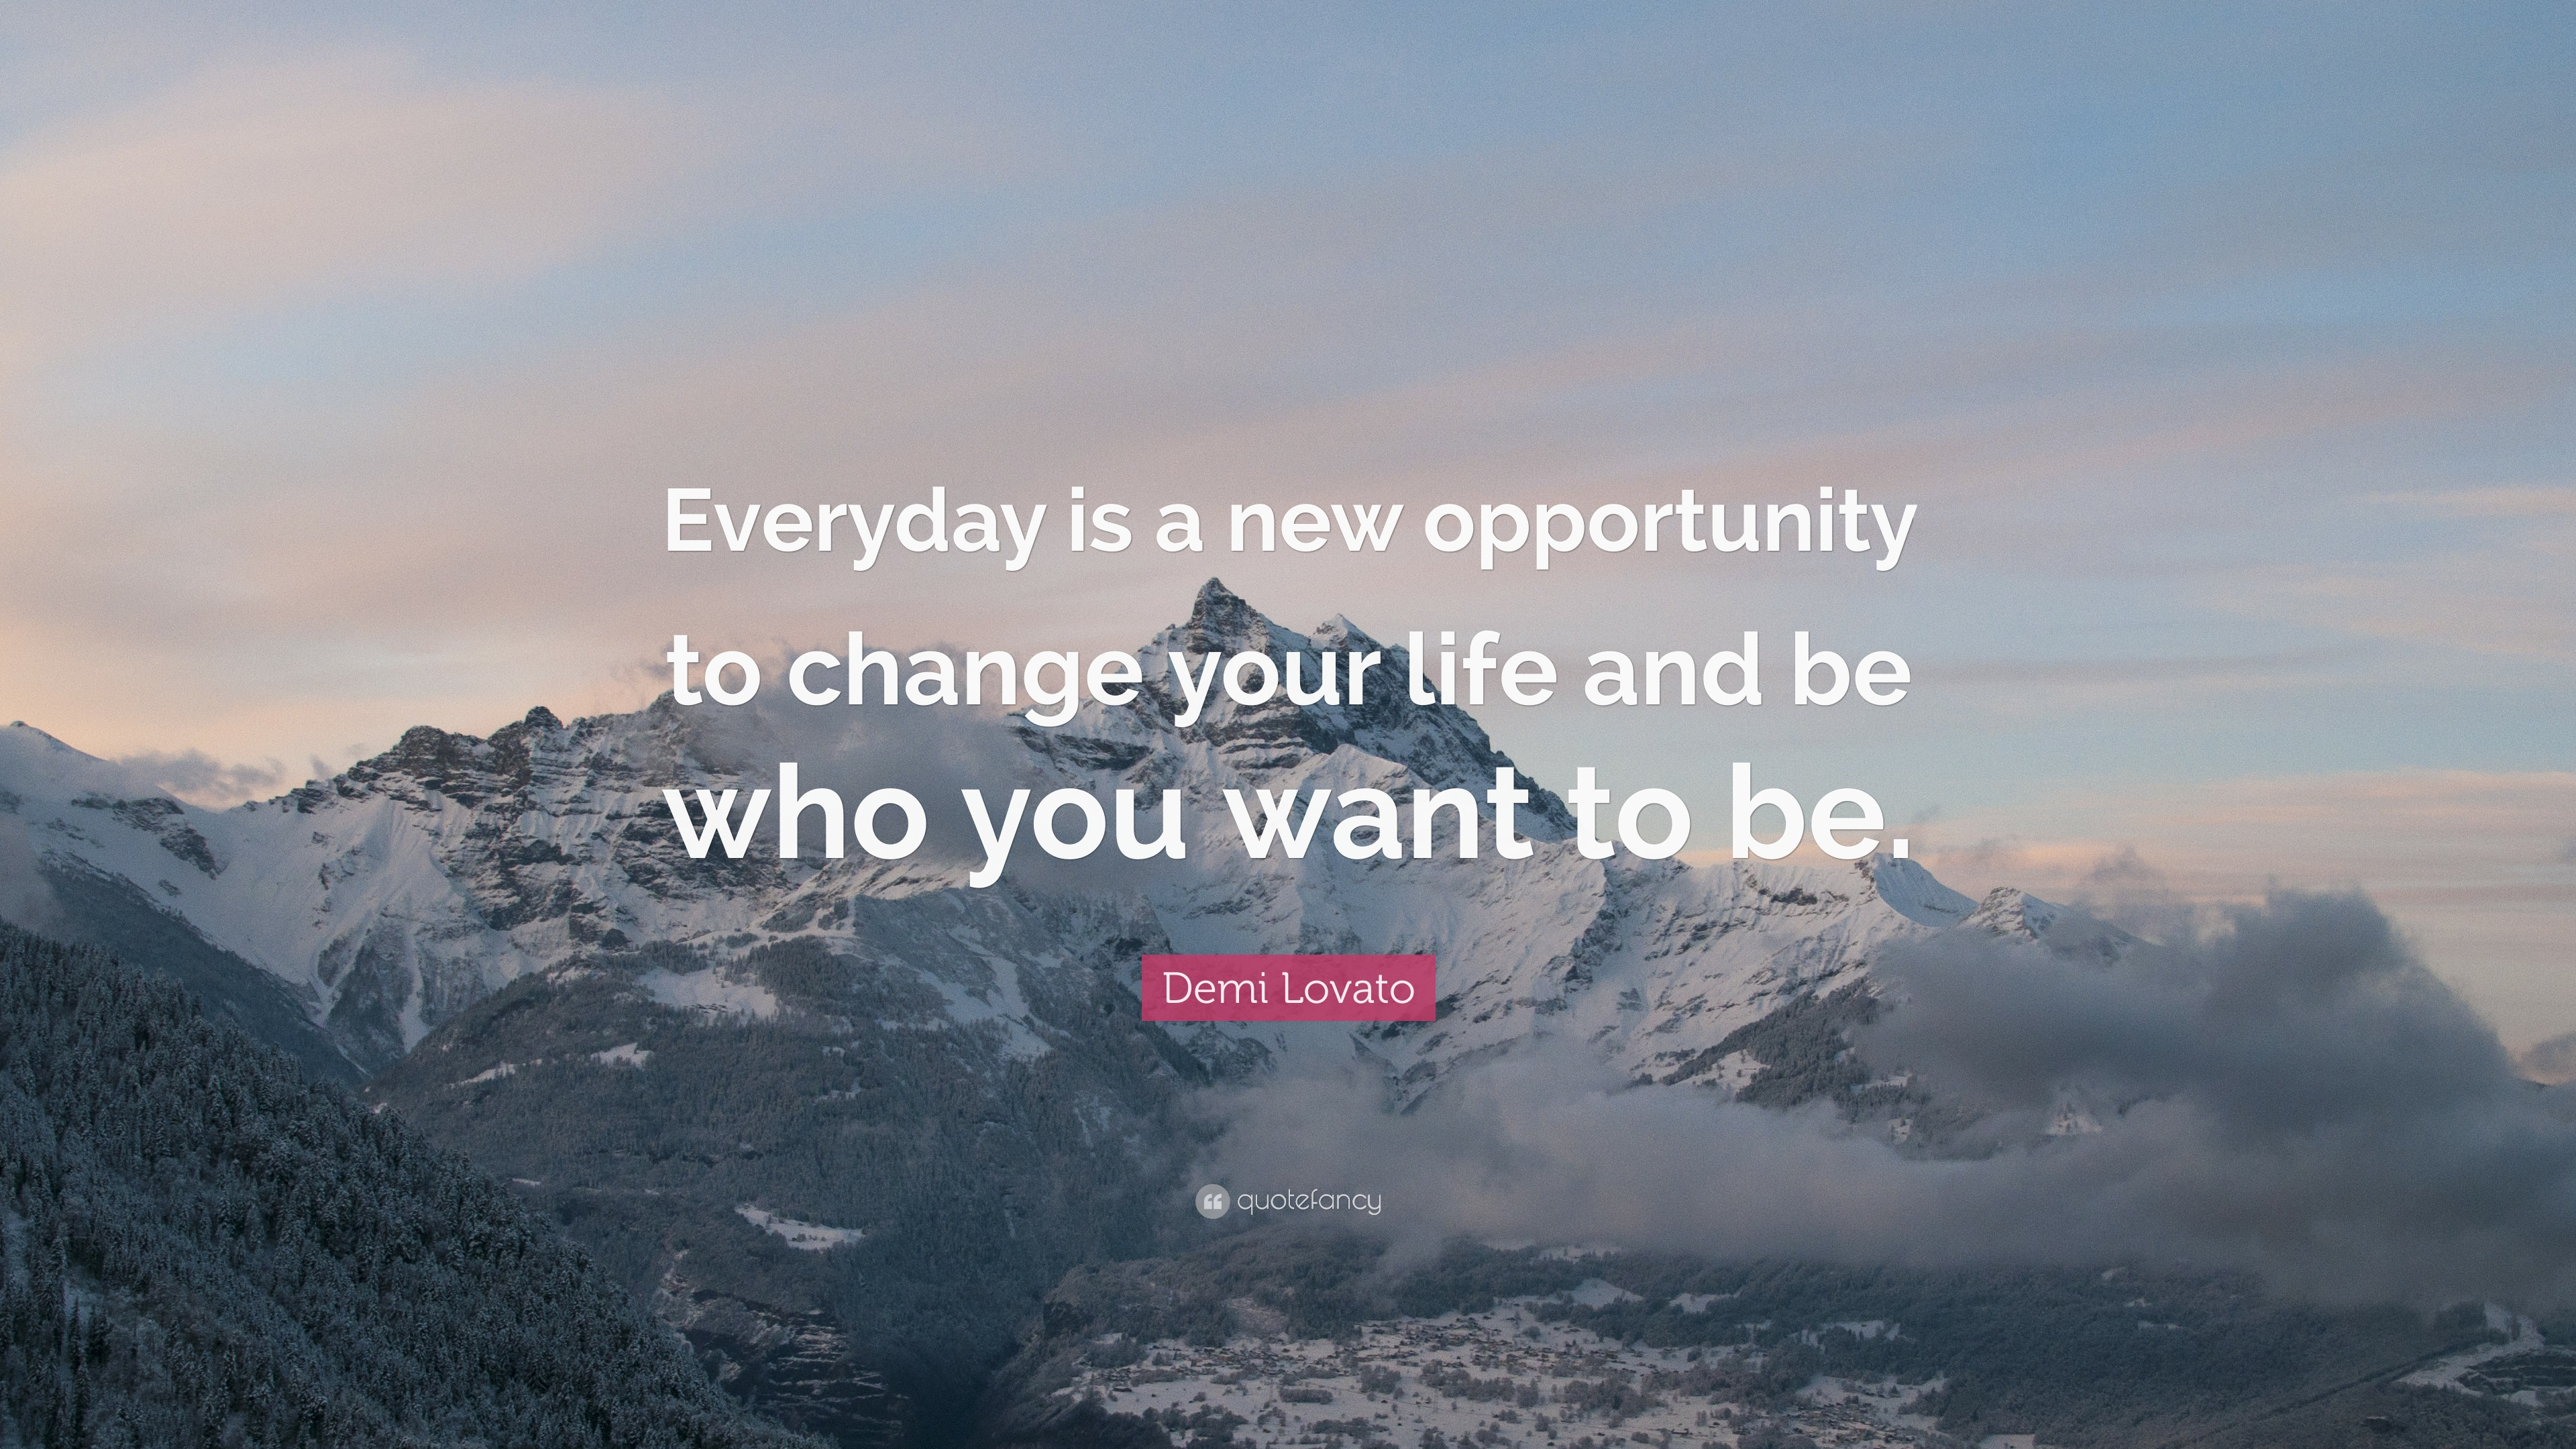 New Opportunity Quotes Opportunity Quotes 40 Wallpapers  Quotefancy